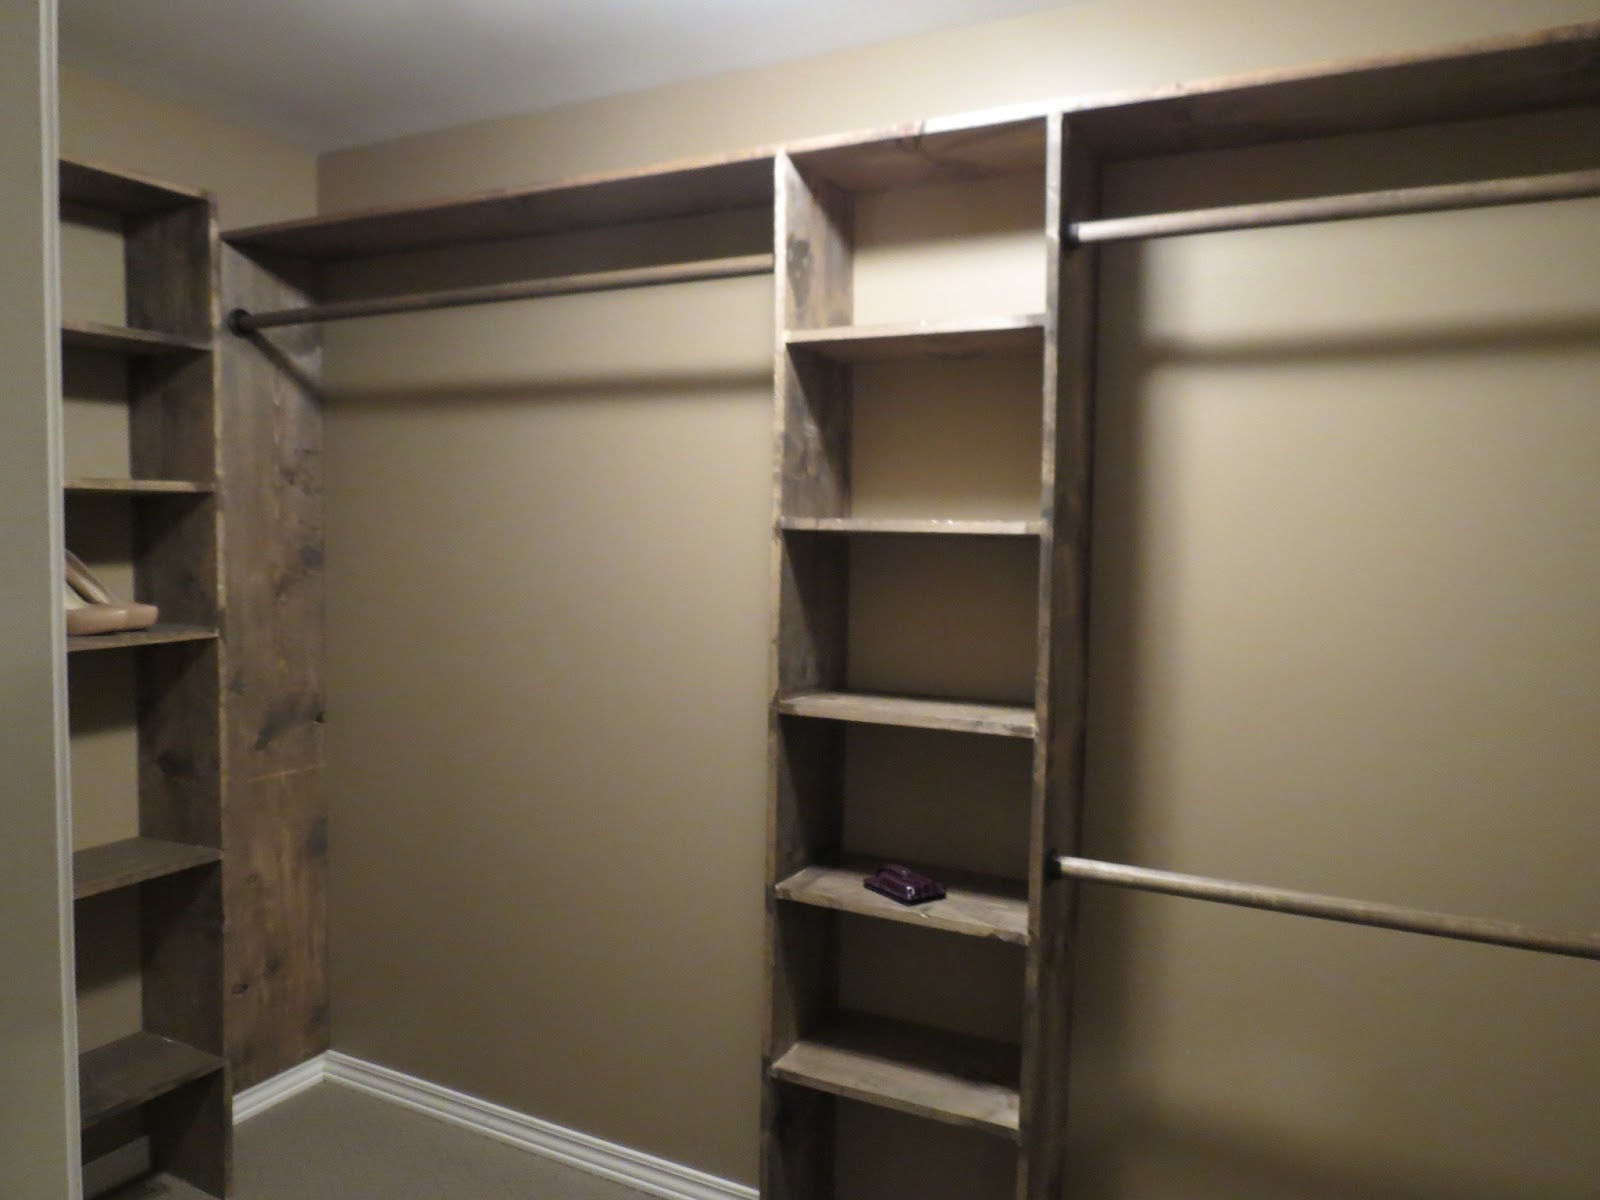 Closet Shelves Let 39s Just Build A House Walk In Closets No More Living